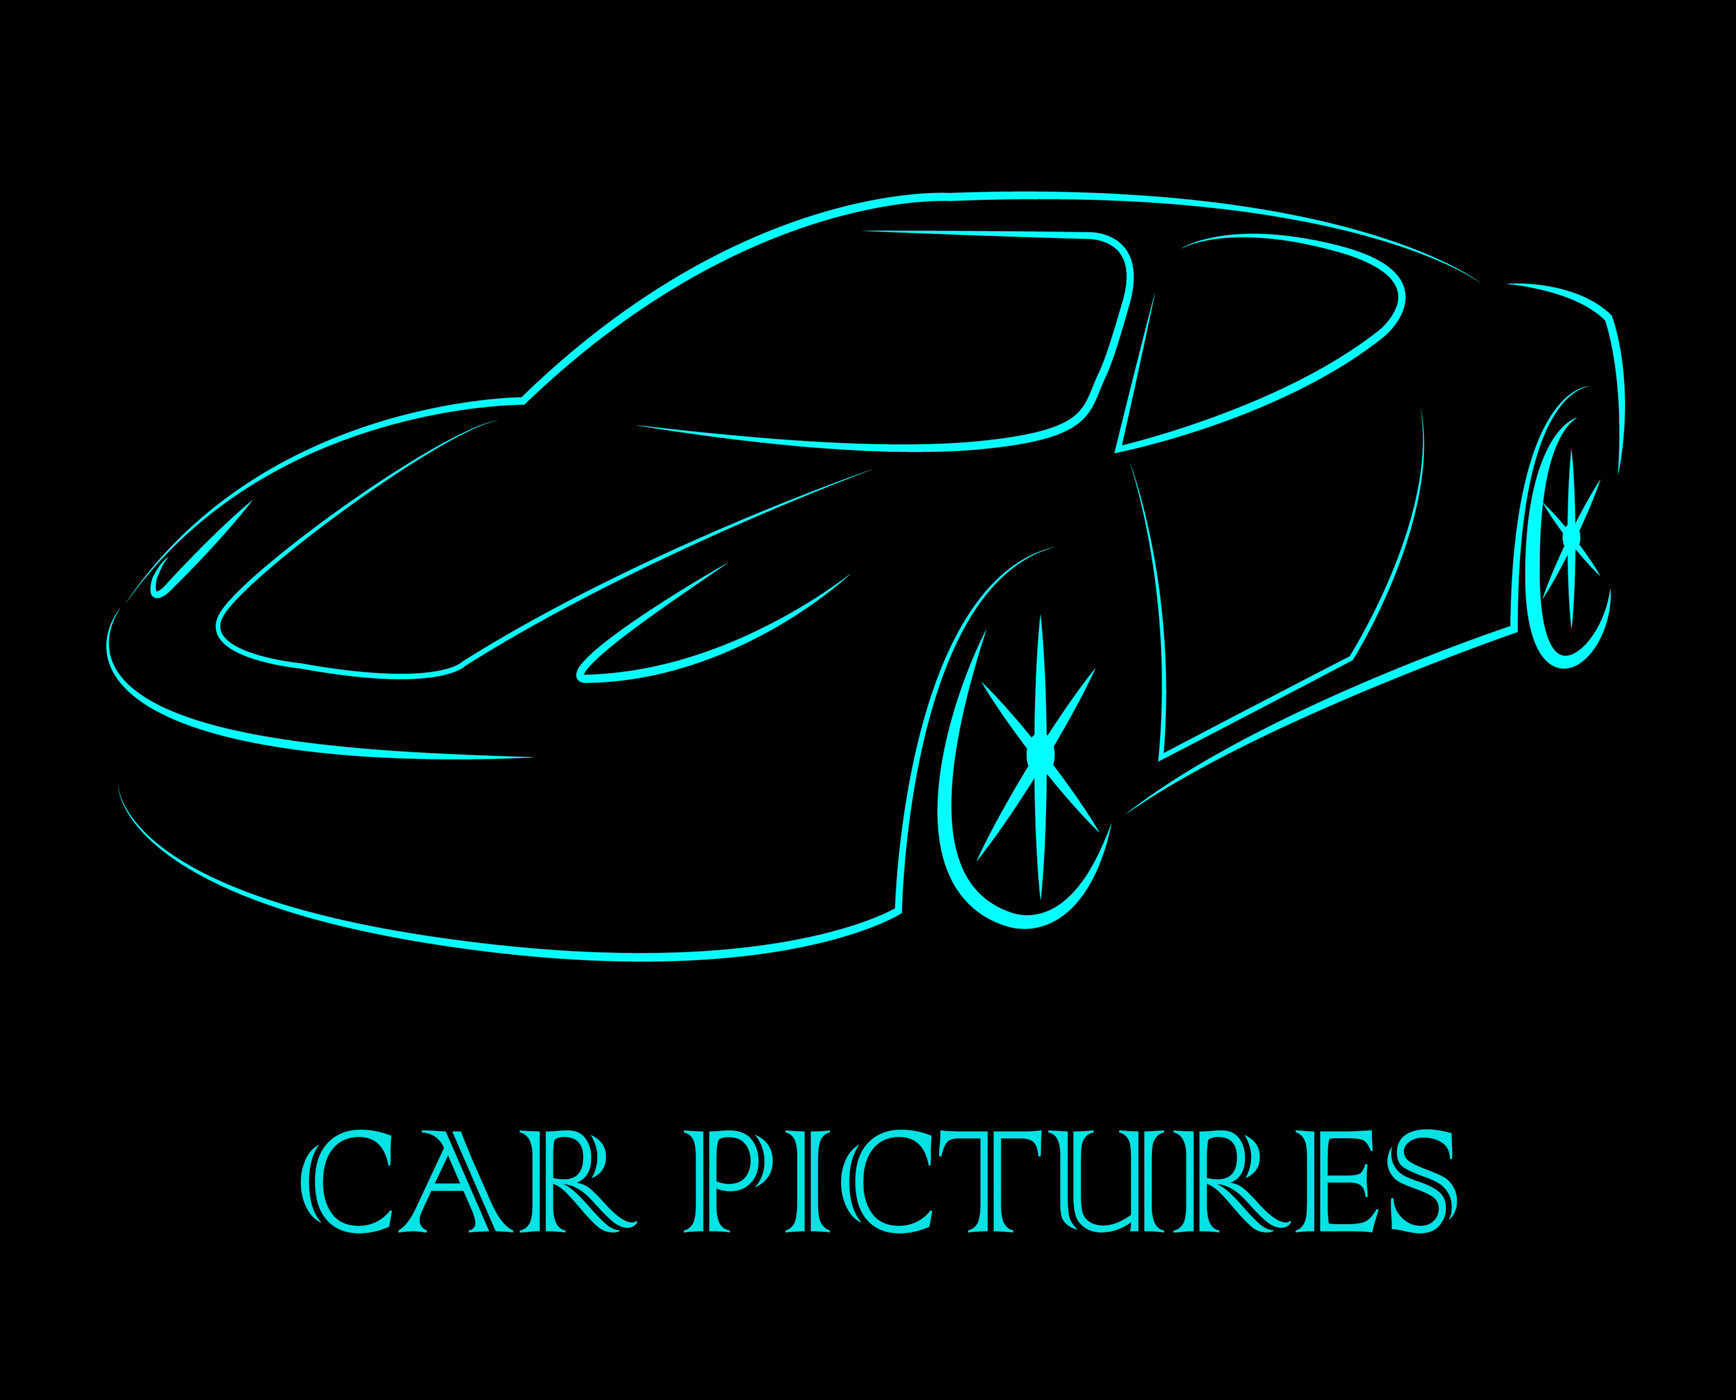 Car pictures indicates transport transportation and photos